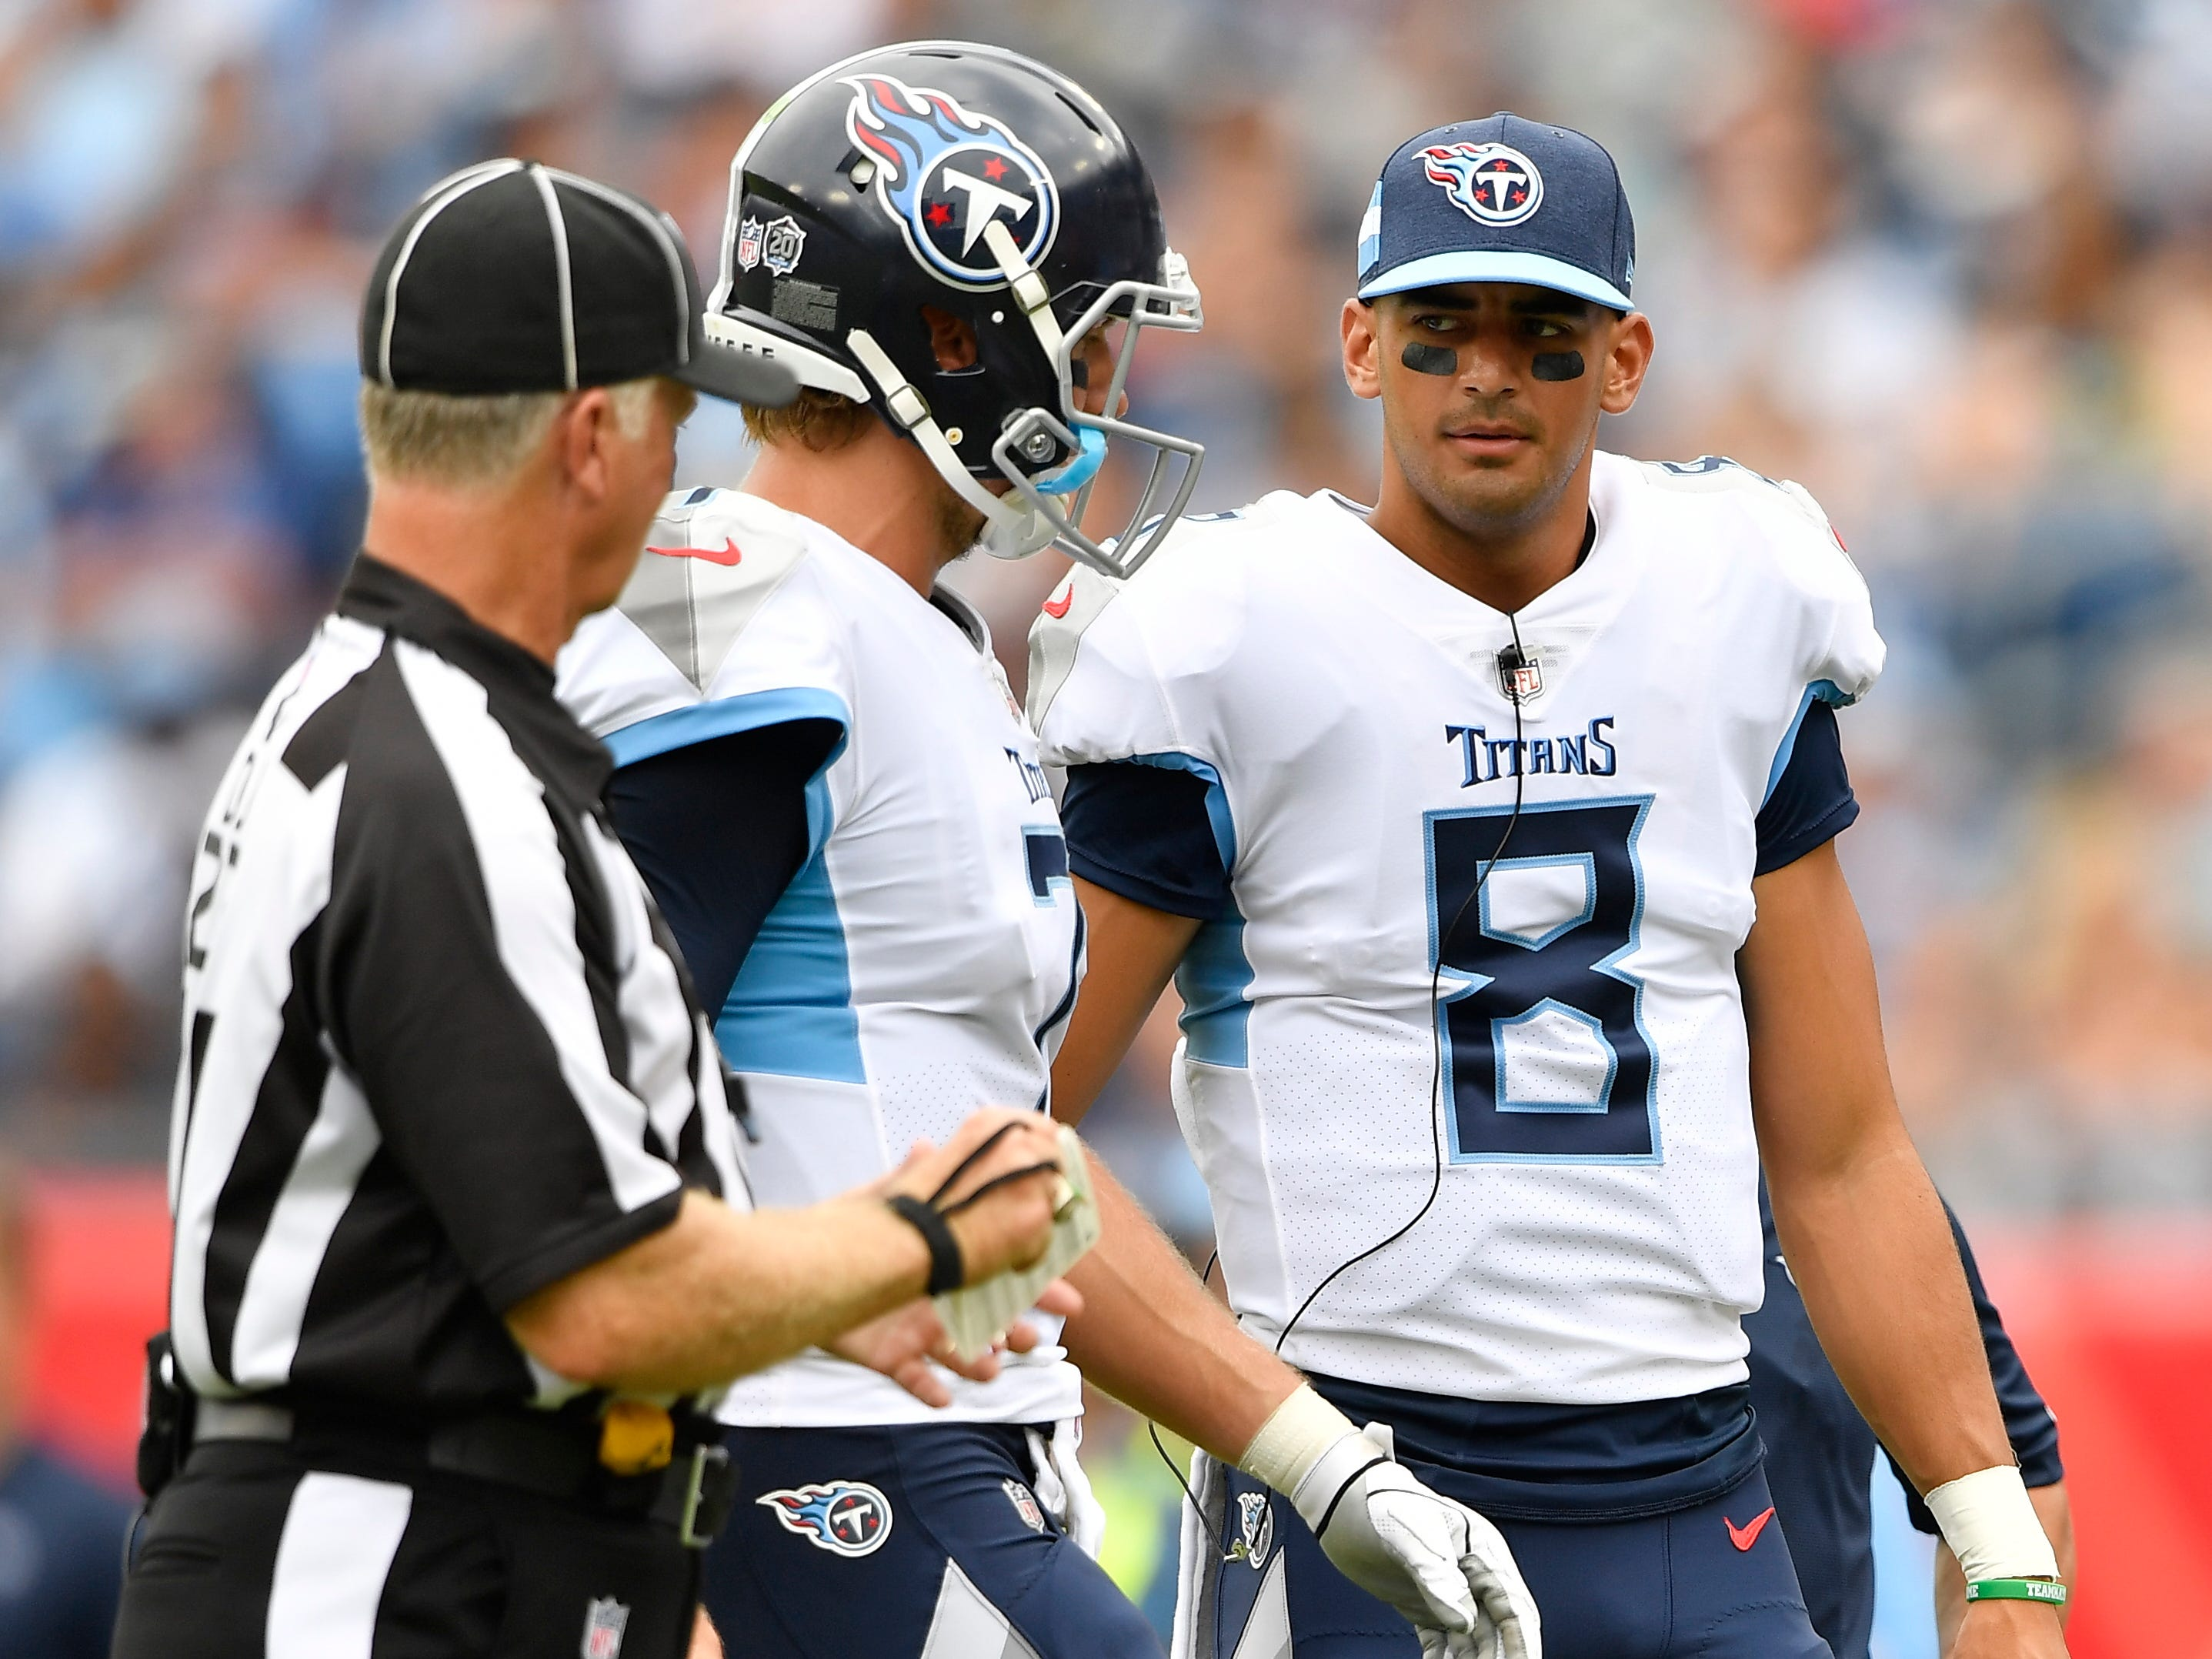 Titans quarterback Marcus Mariota (8) greets quarterback Blaine Gabbert (7) when he comes off the field in the second half at Nissan Stadium Sunday, Sept. 16, 2018, in Nashville, Tenn.